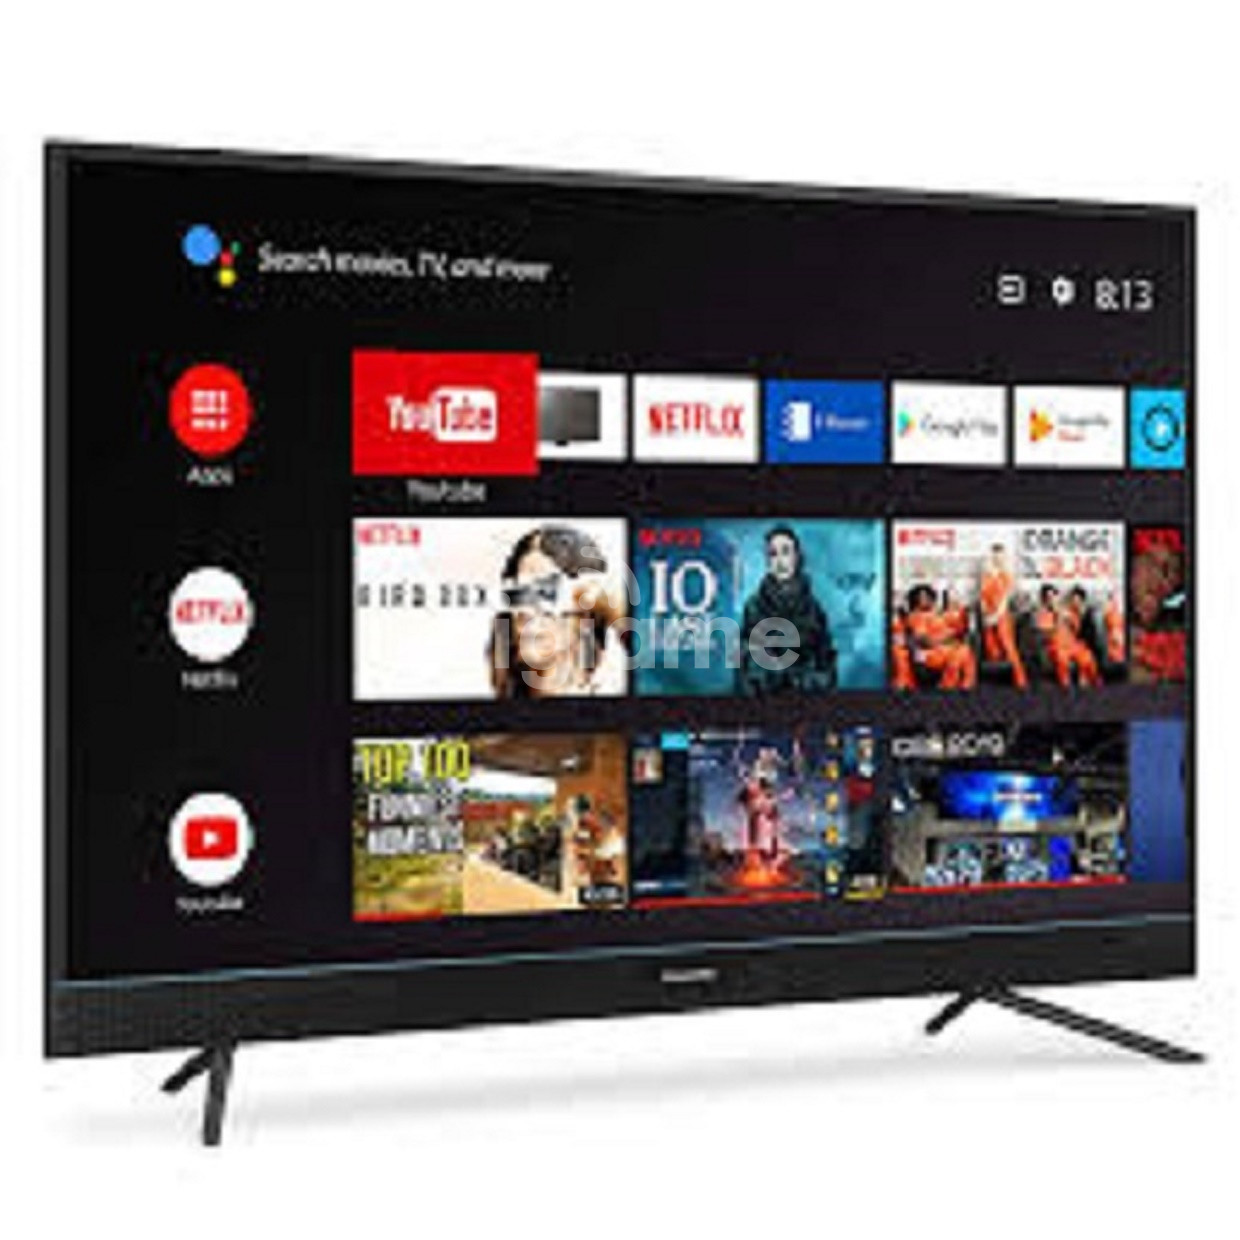 40 Inches Skyview Android Smart Tv With Netflix in Nairobi ...